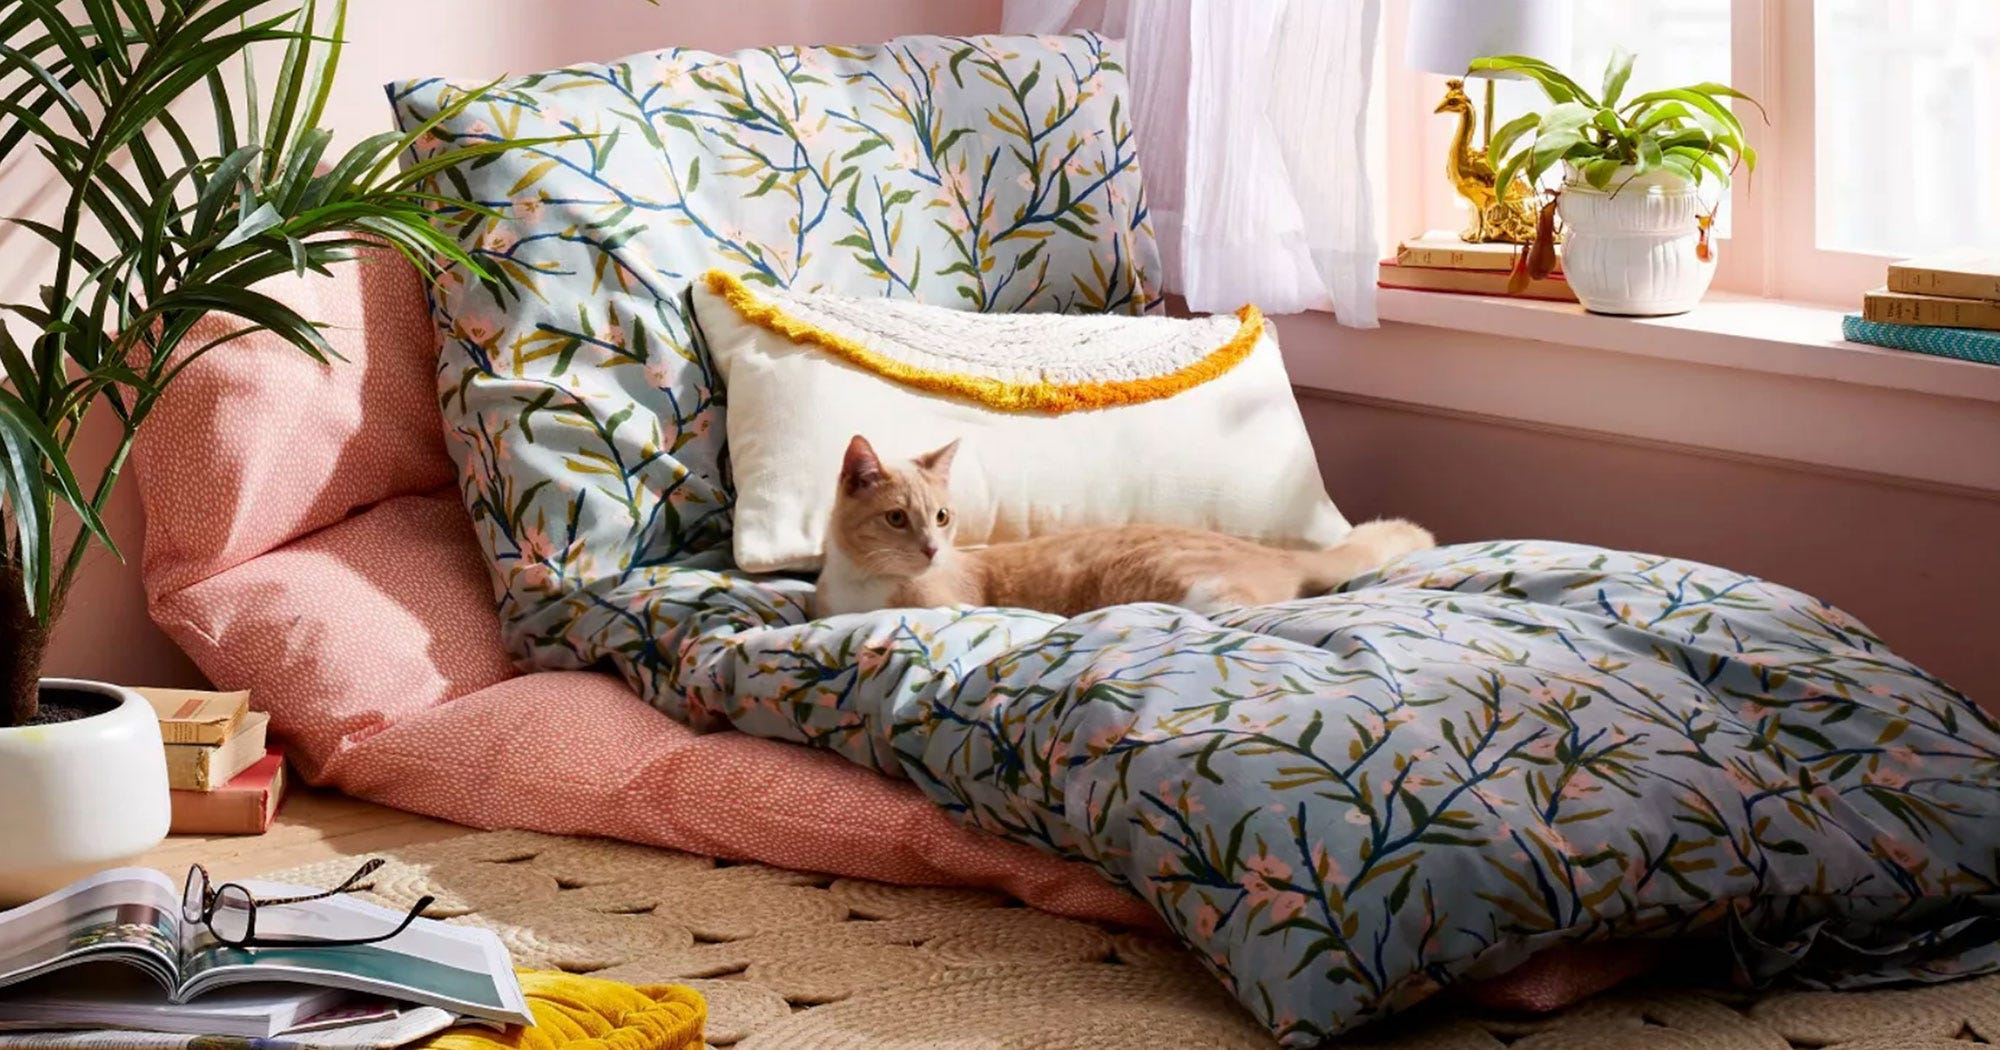 Target's New Home Goods Are Here To Freshen Up Your Space With Bright Colors